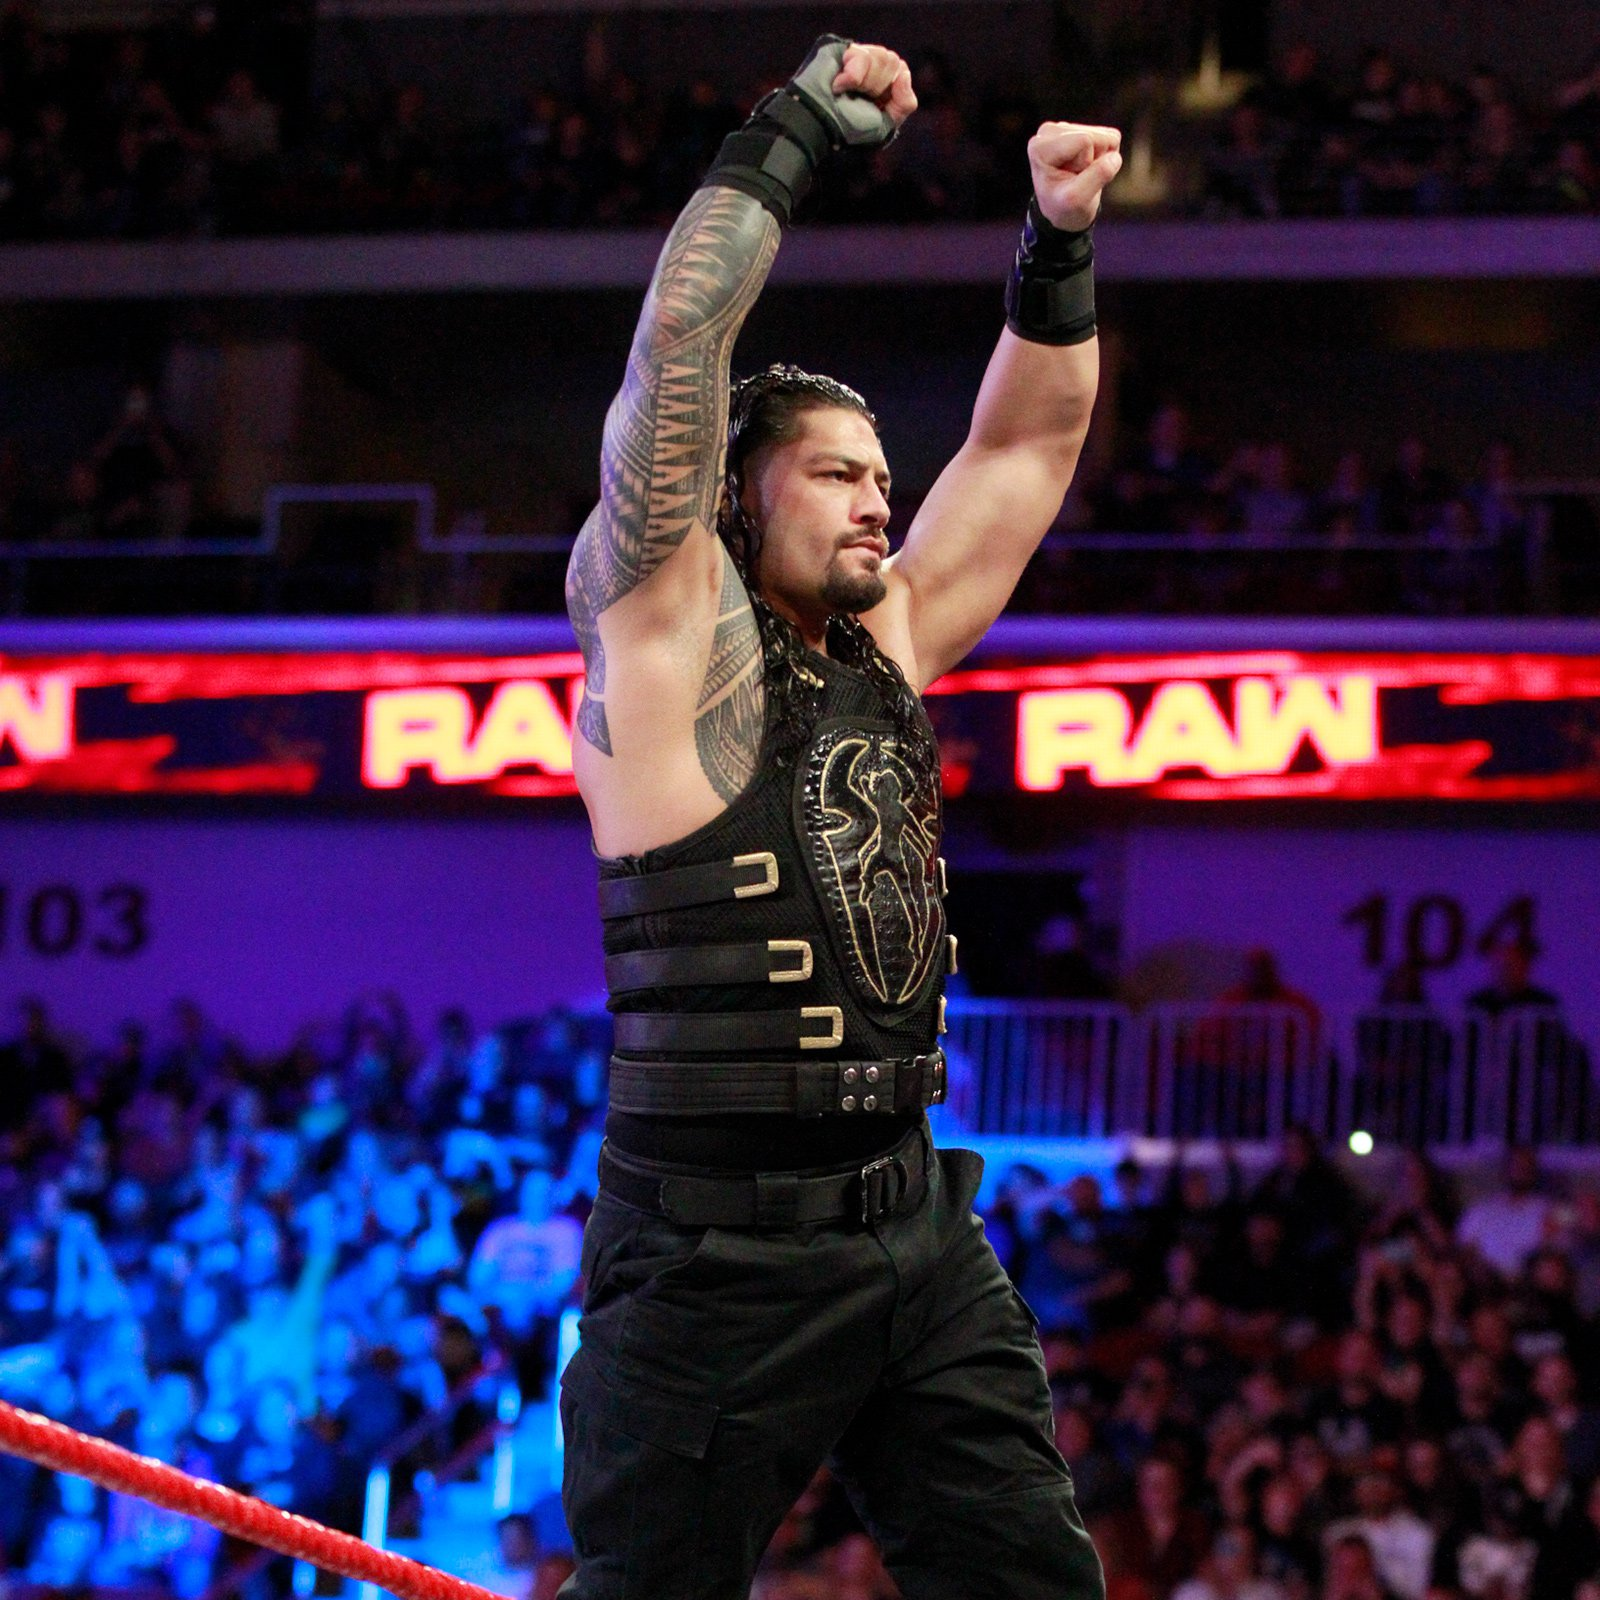 Roman Reigns Returning To WWE RAW This Monday